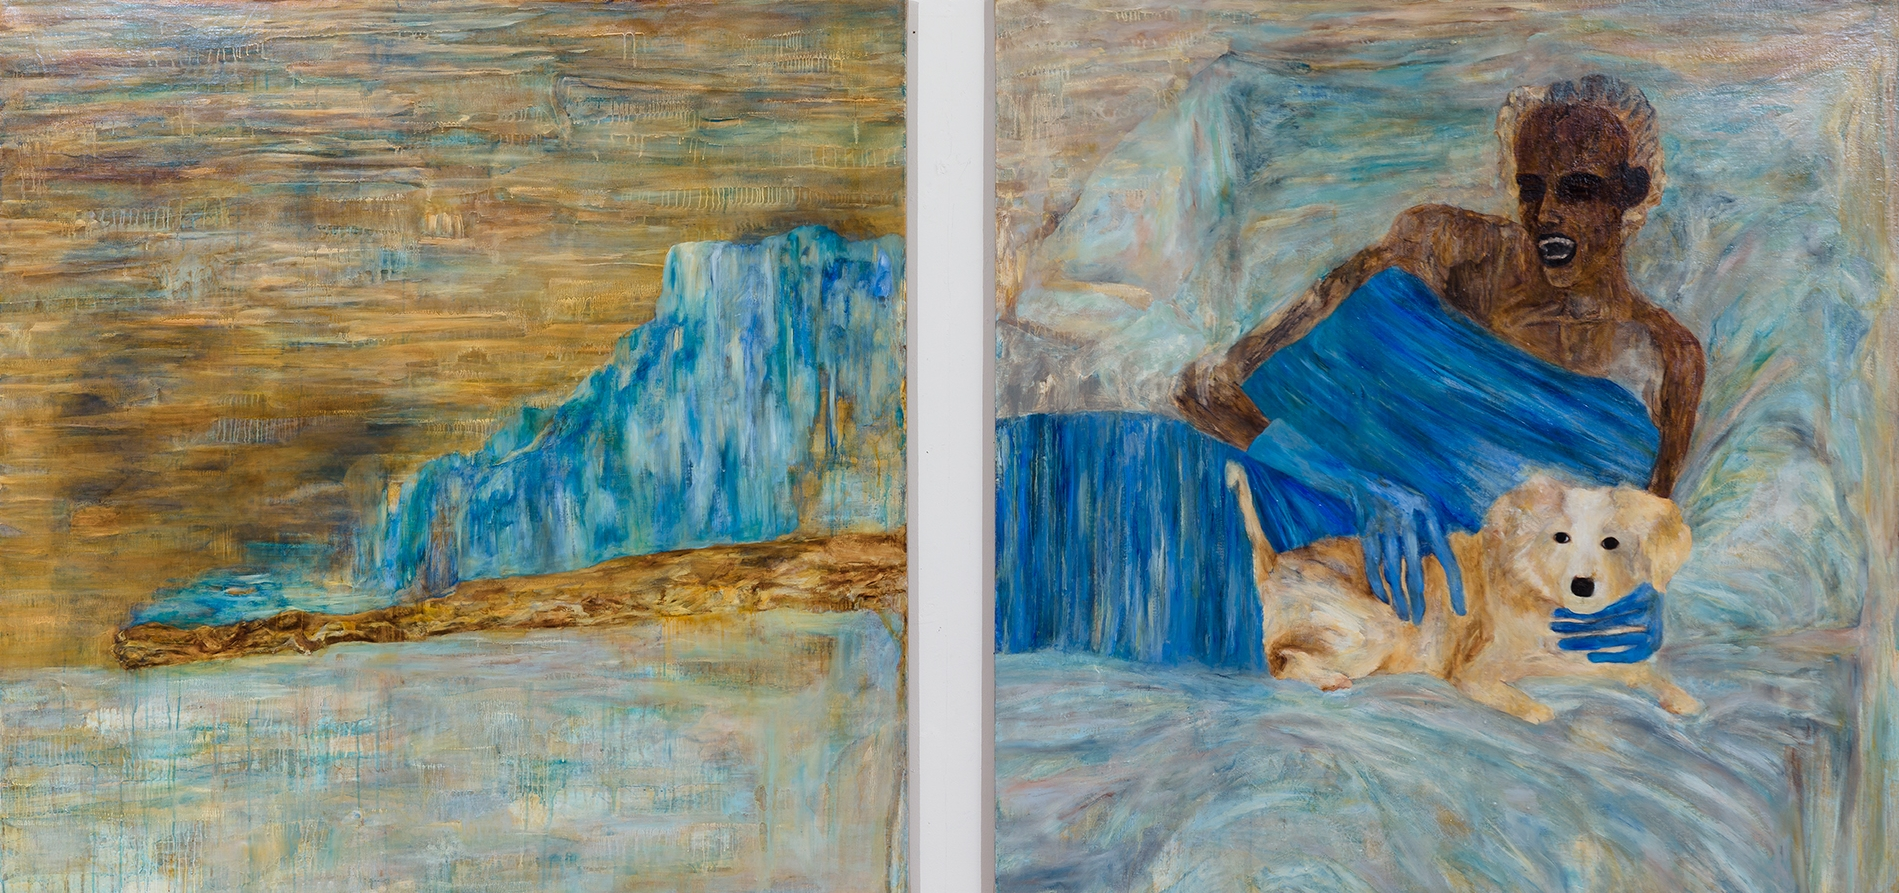 Comfort Animal (diptych), 2015, Oil on linen, 54 x 114 inches